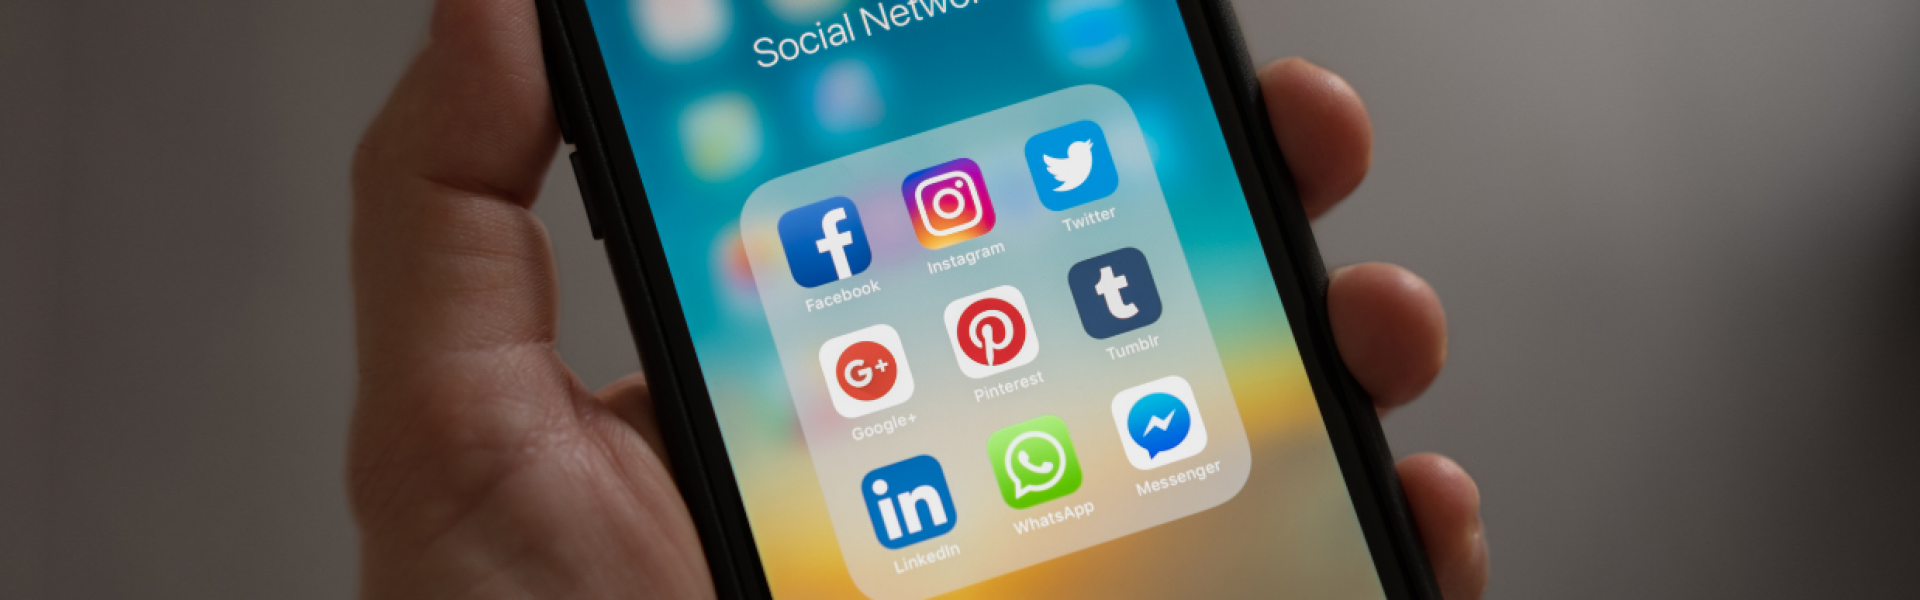 traffic-customers-to-your-website-using-social-media